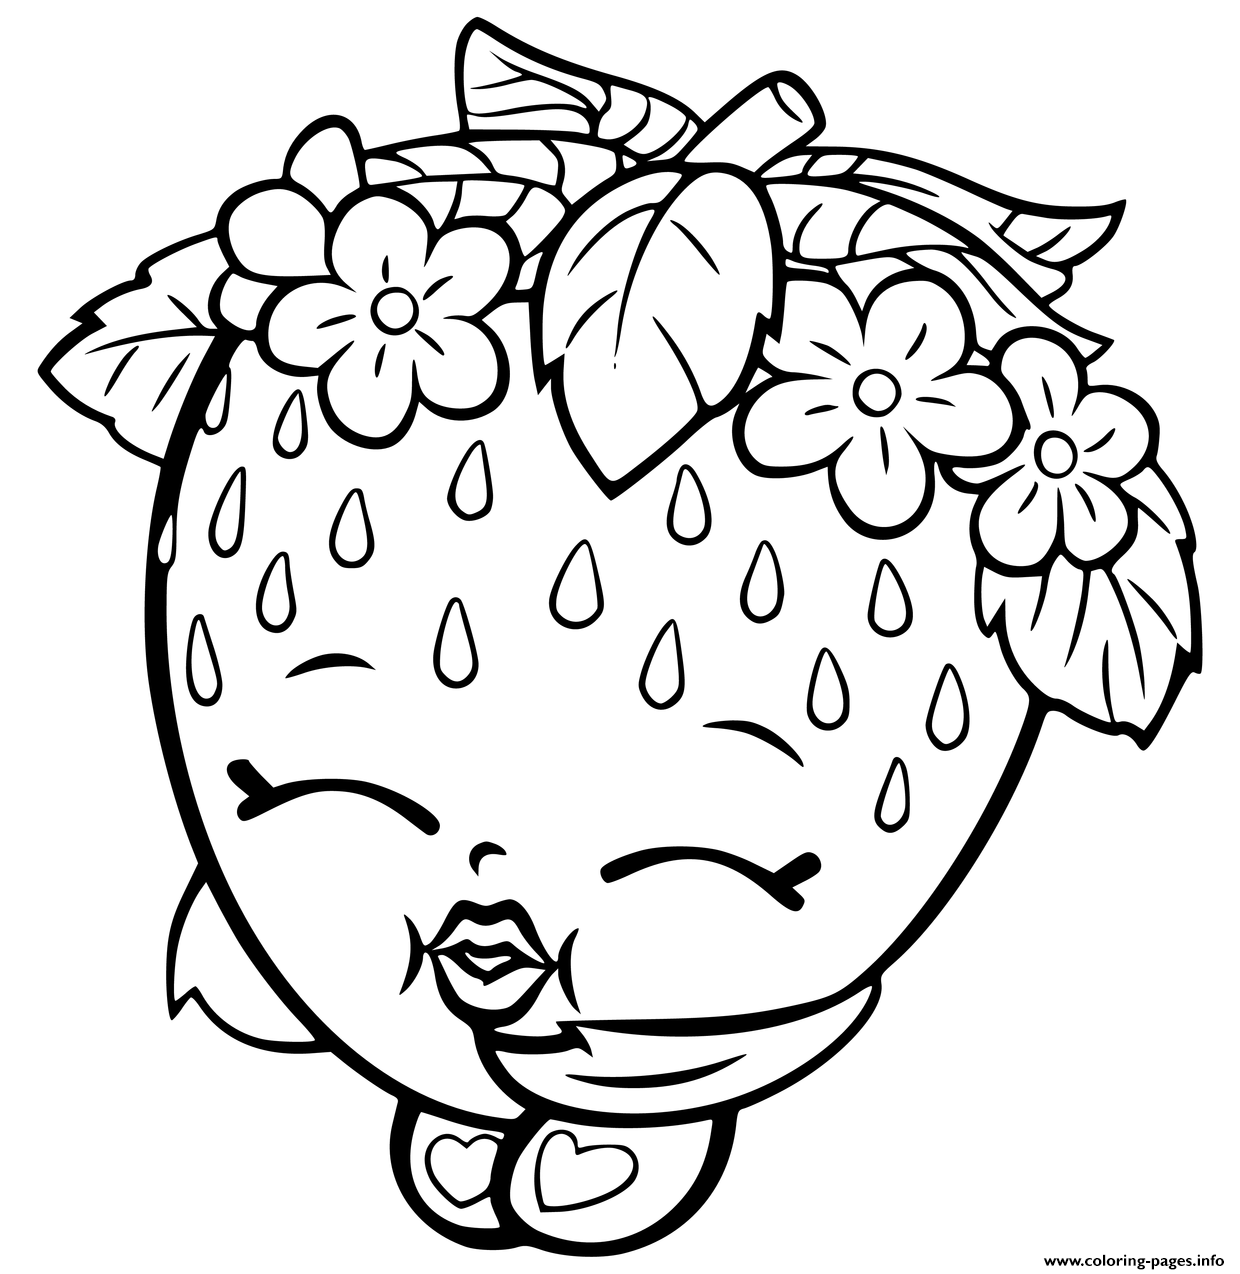 photograph regarding Shopkins Coloring Pages Printable titled Shopkins Strawberry Coloring Internet pages Printable